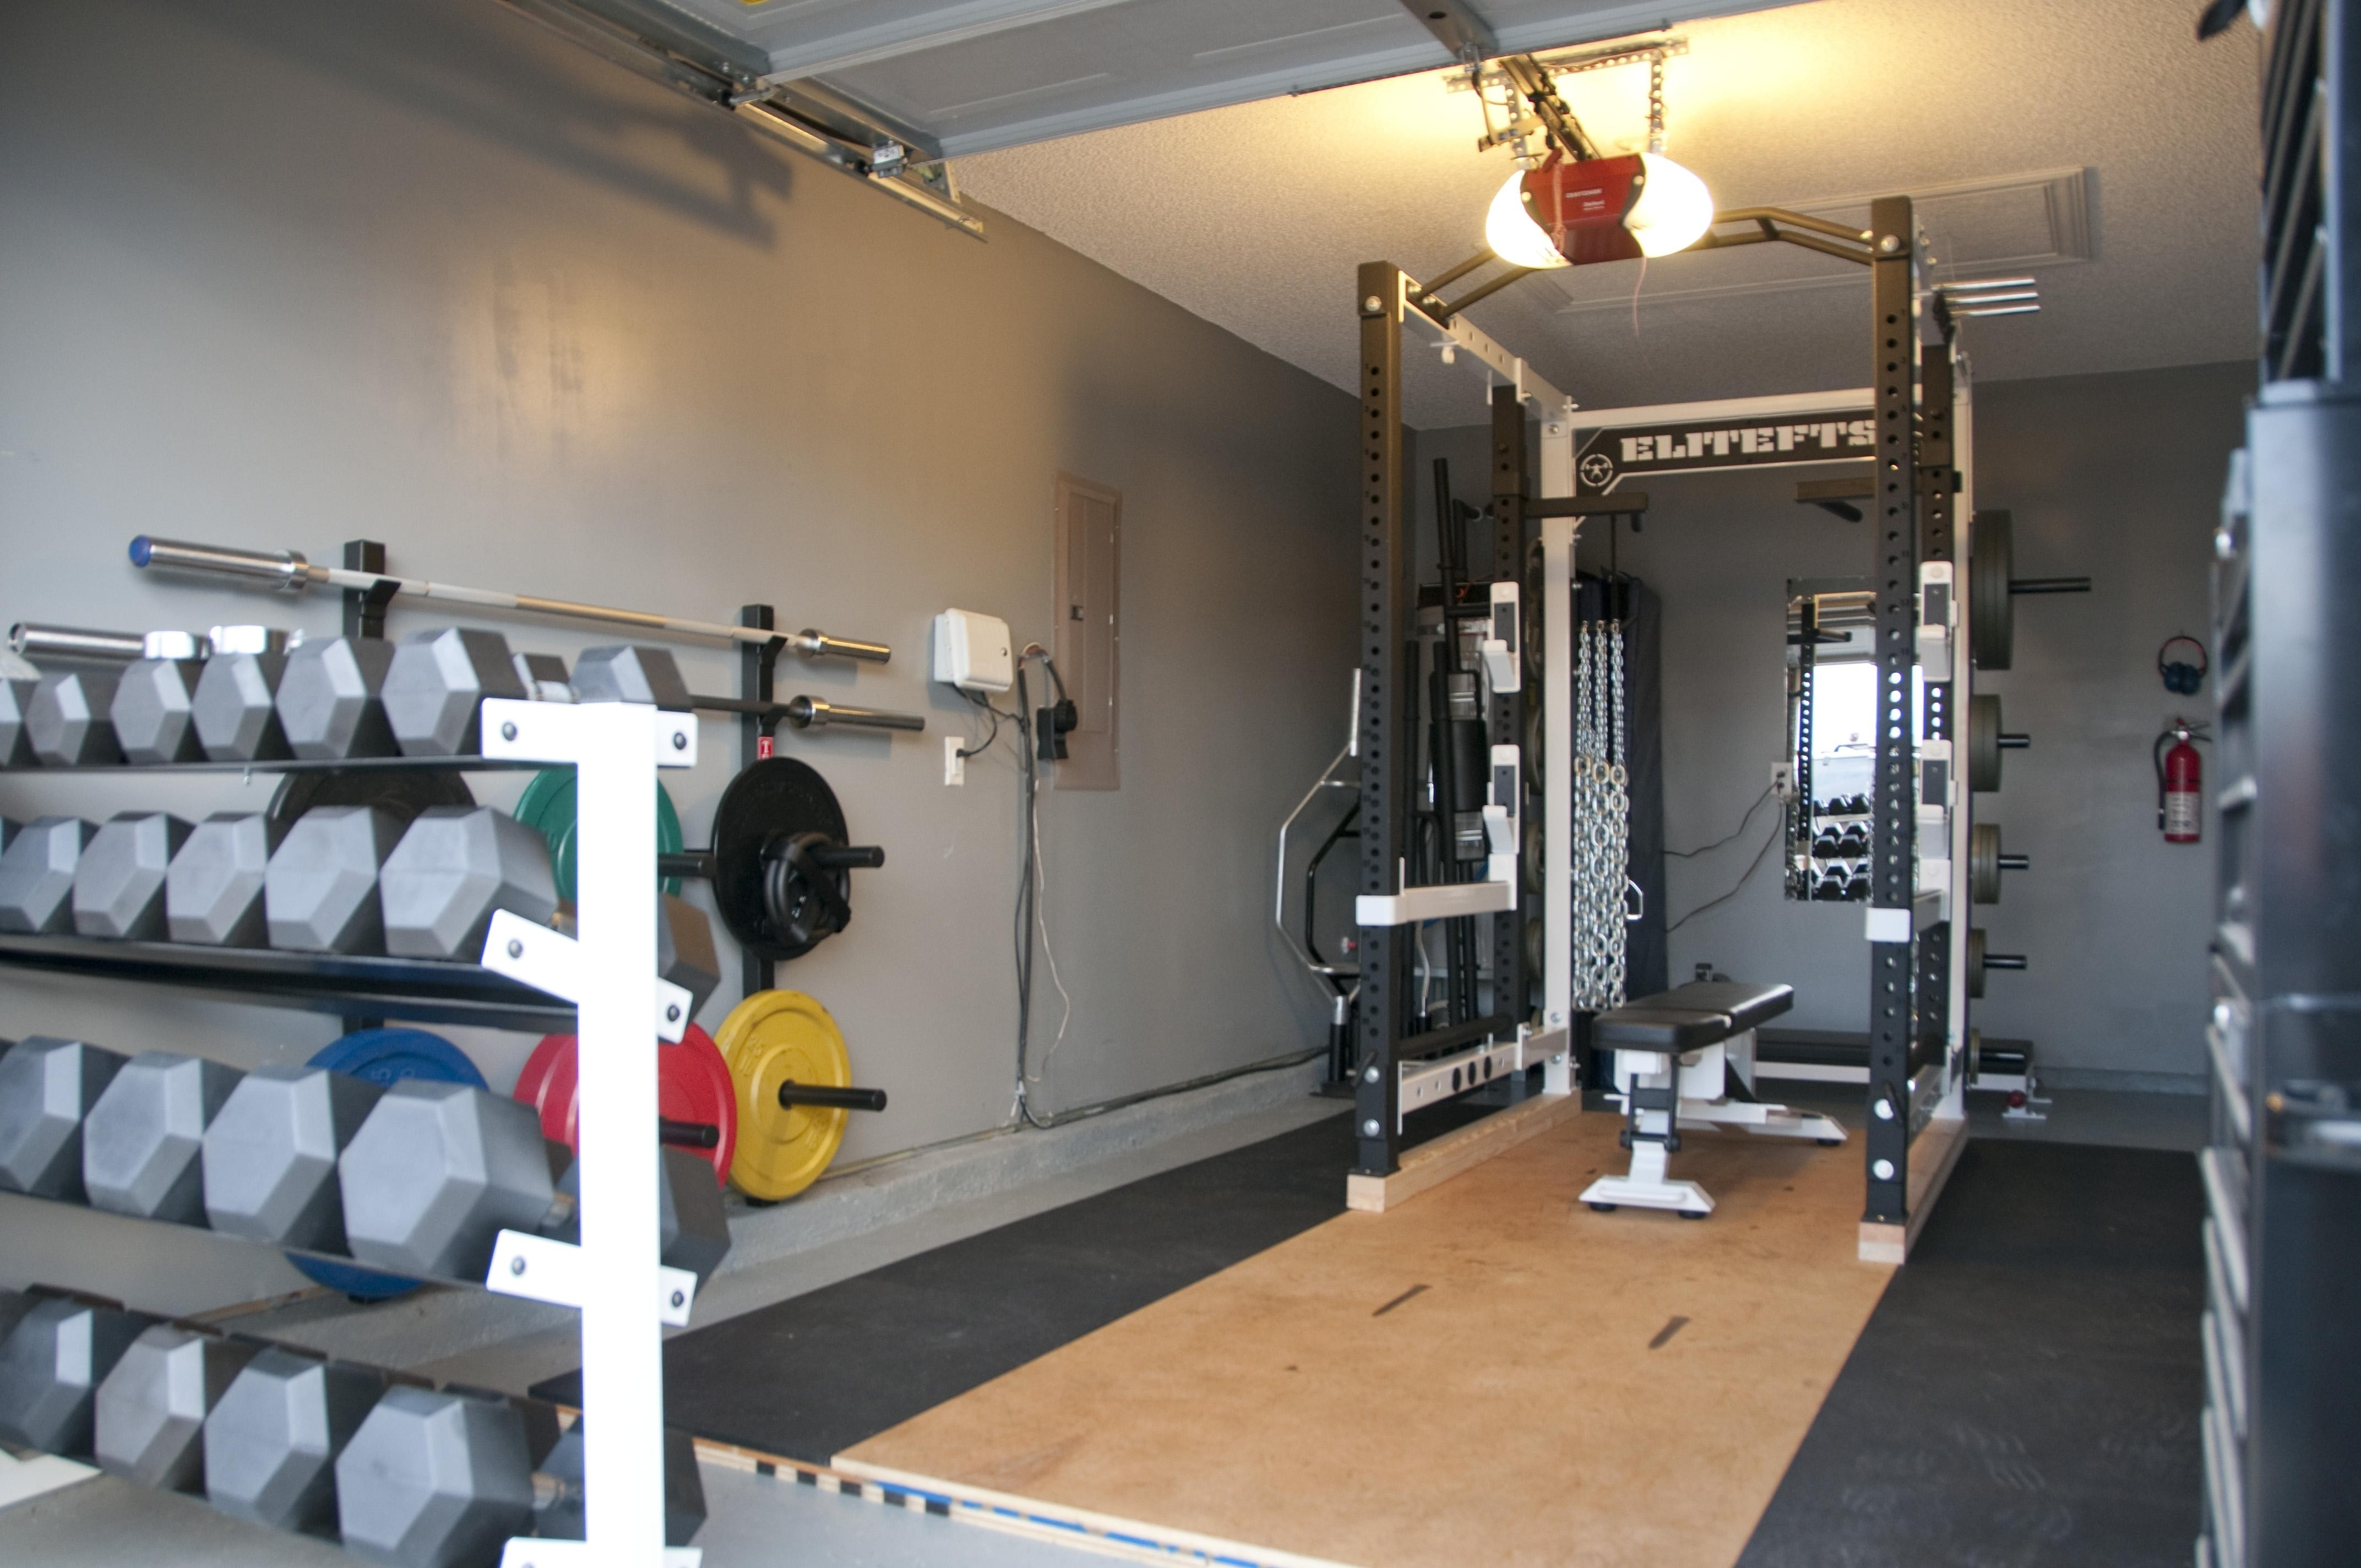 Garage Gym Ideas Pinterest Small Home Garage Gym Ideas Madison Art Center Design